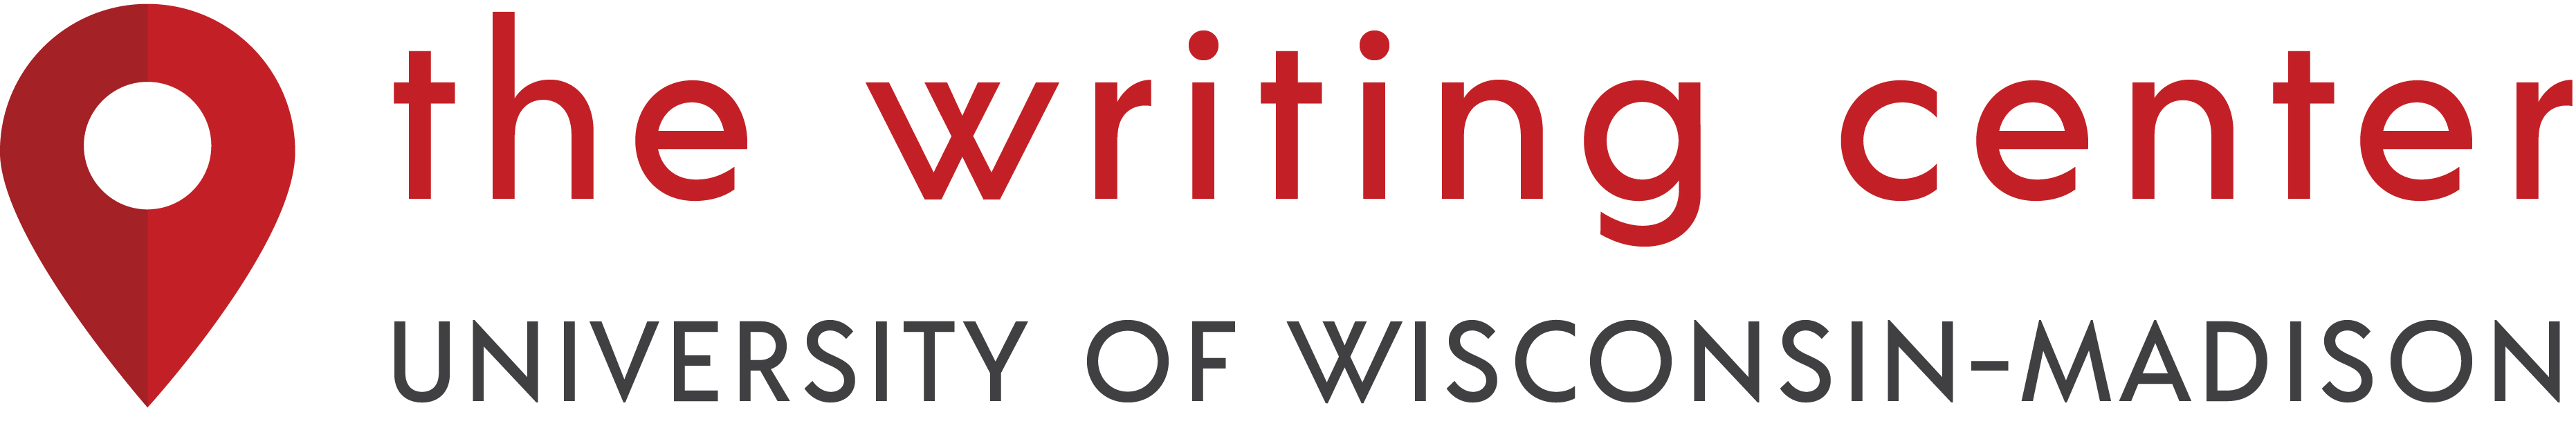 writing-center-university-wisconsin-madison